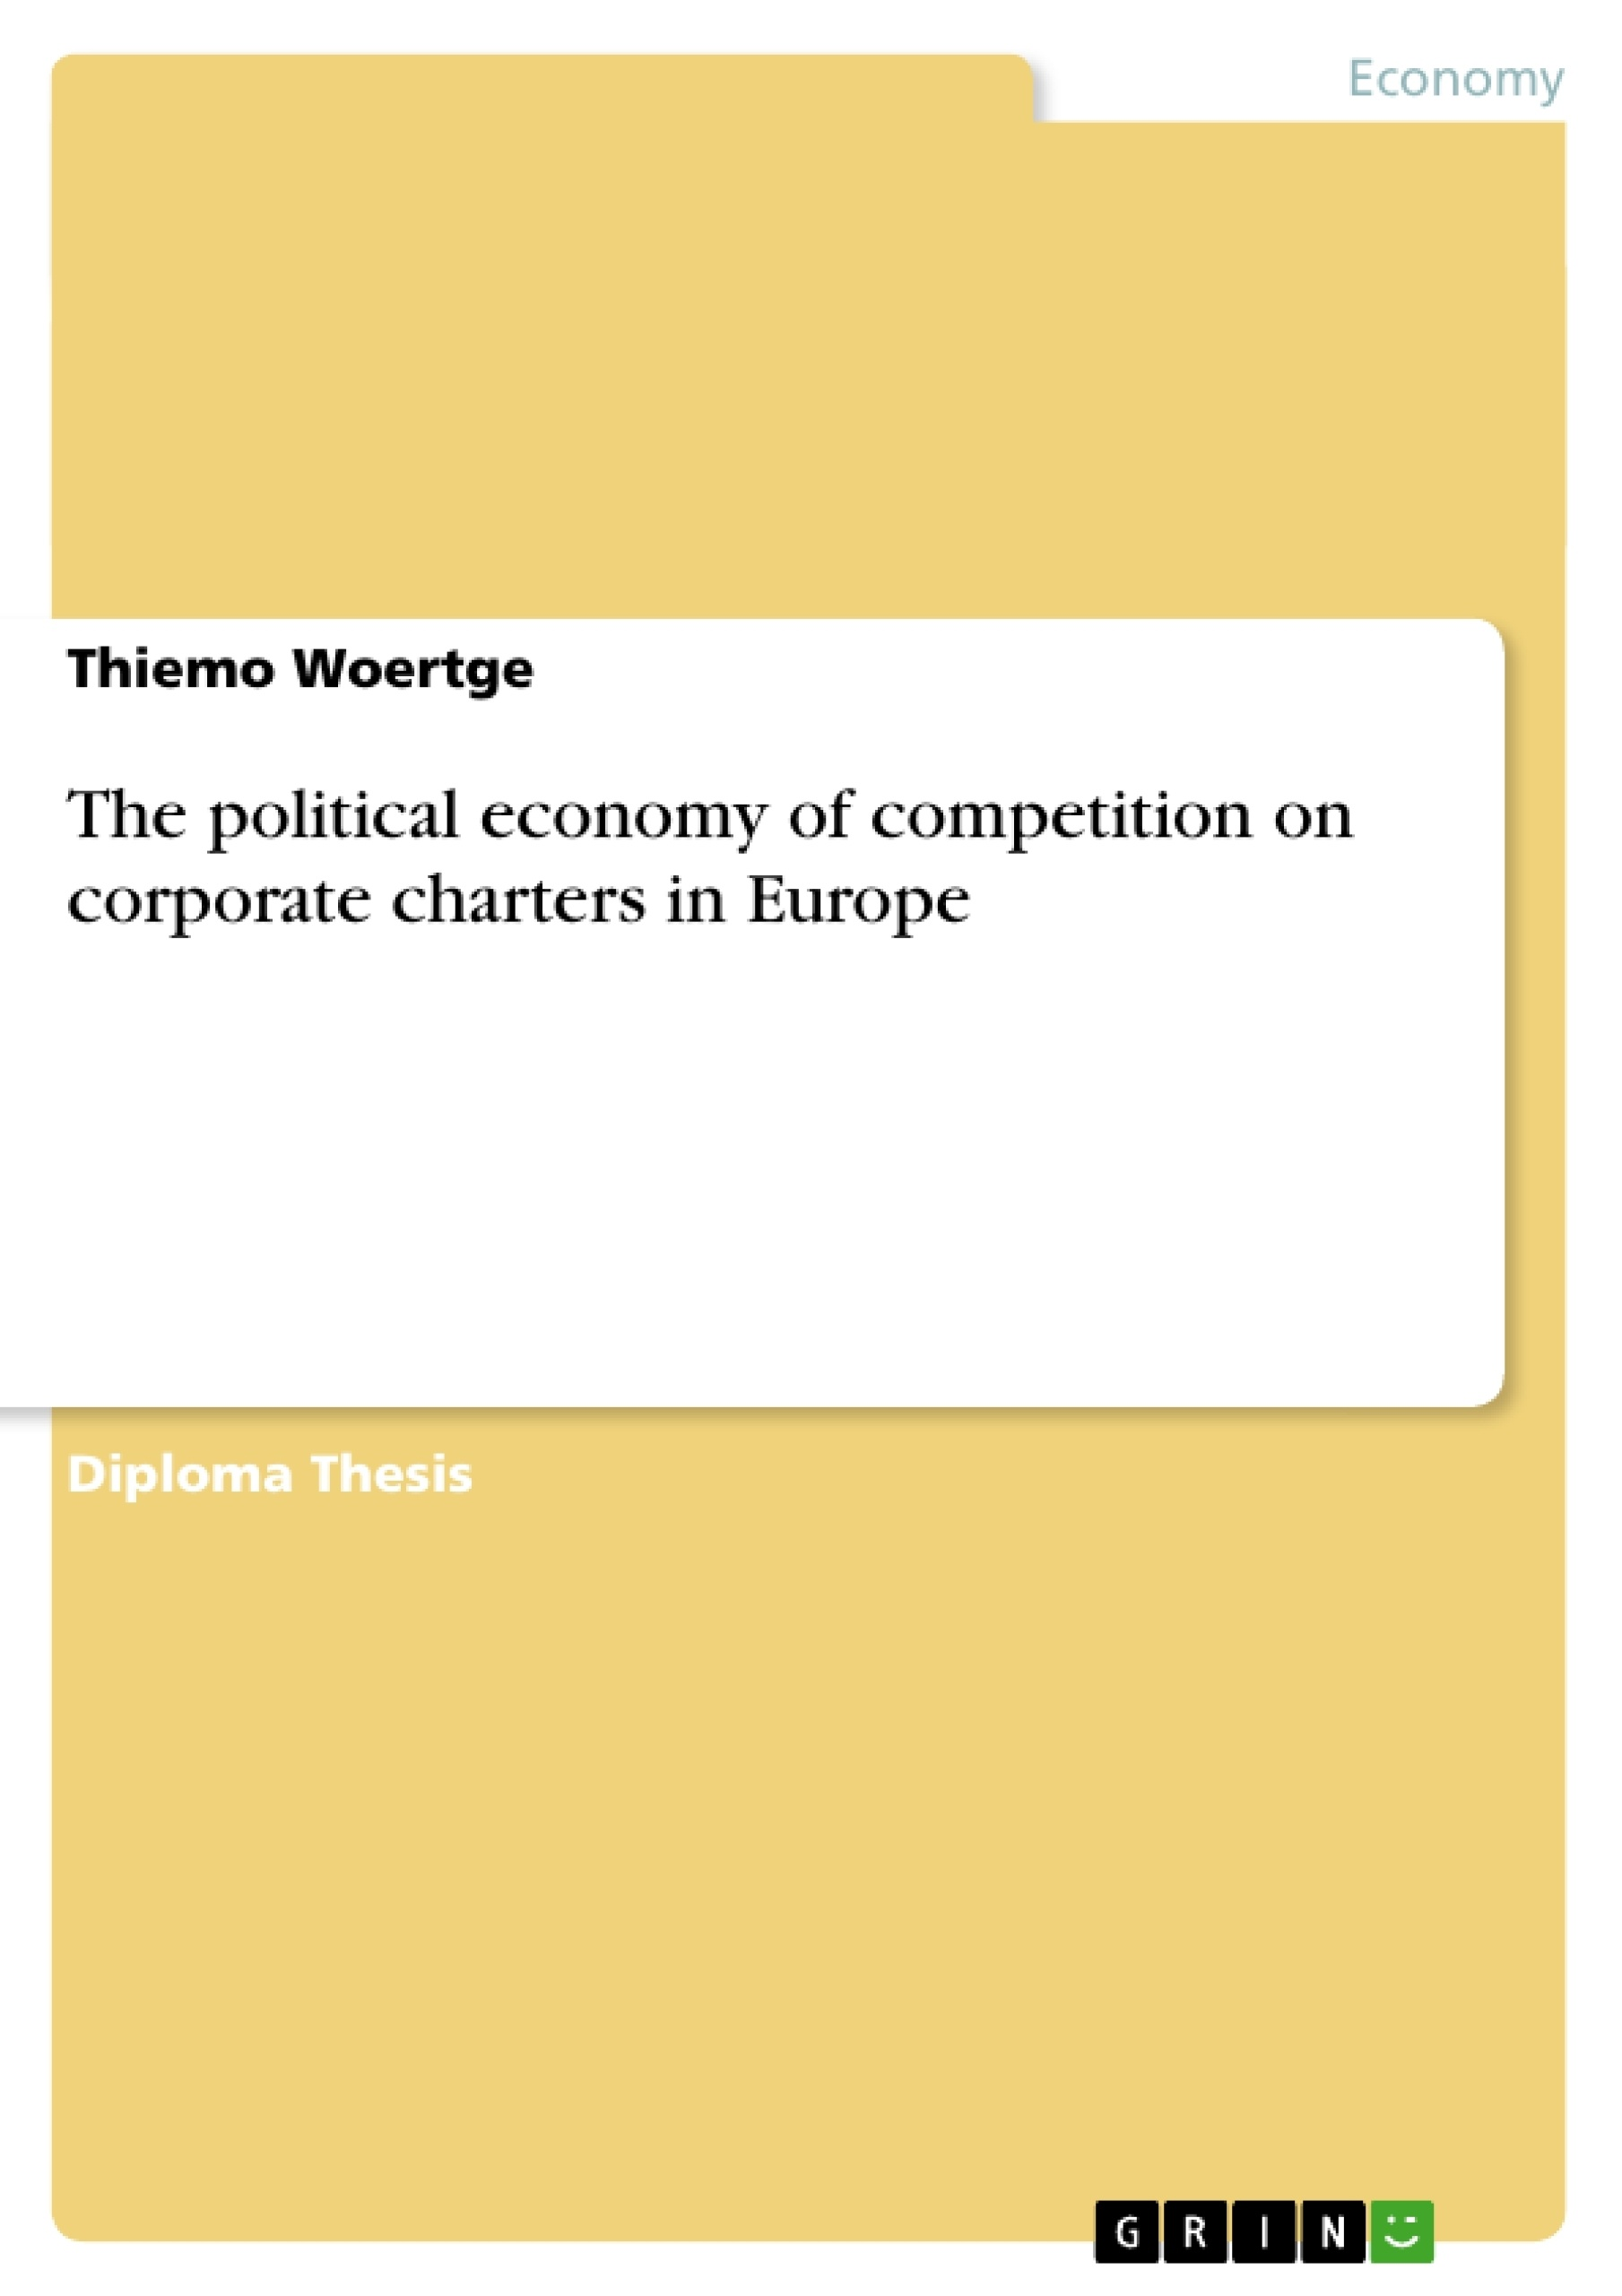 Title: The political economy of competition on corporate charters in Europe